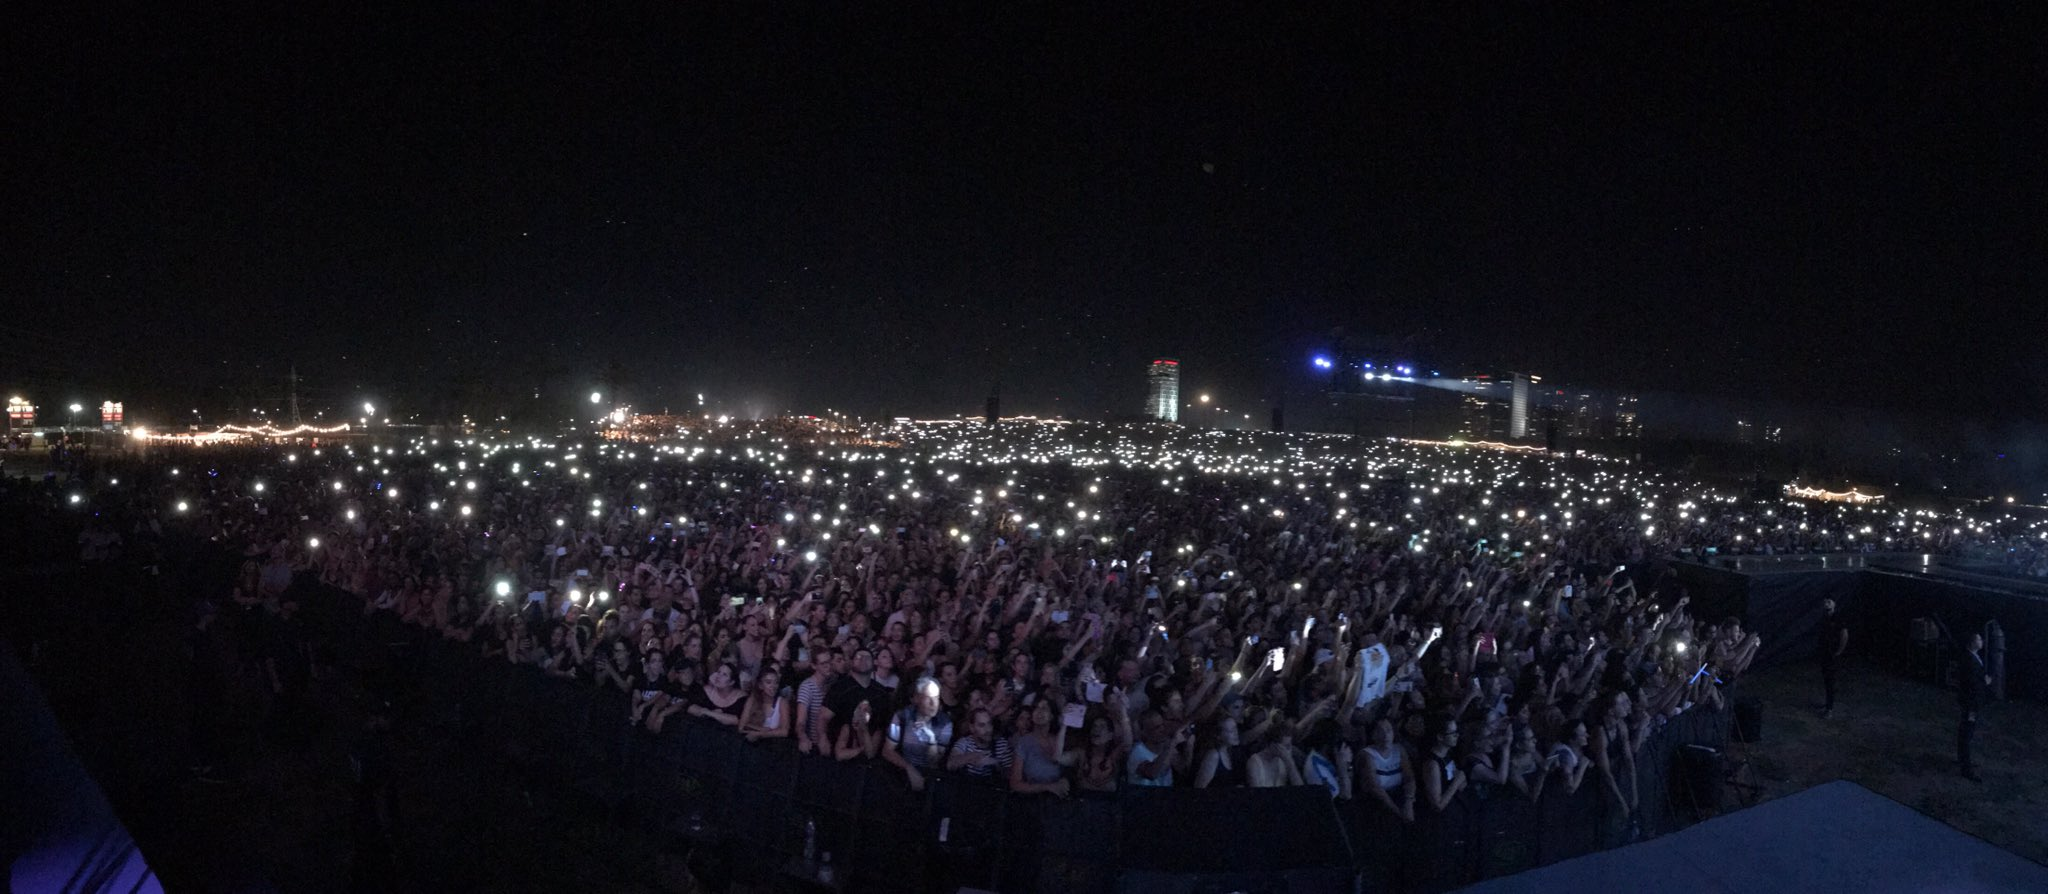 Still can't believe this happened in Tel Aviv!!!! What an amazing way to end the tour last month!! ❤️ #TBT https://t.co/UXU5tH8uYc